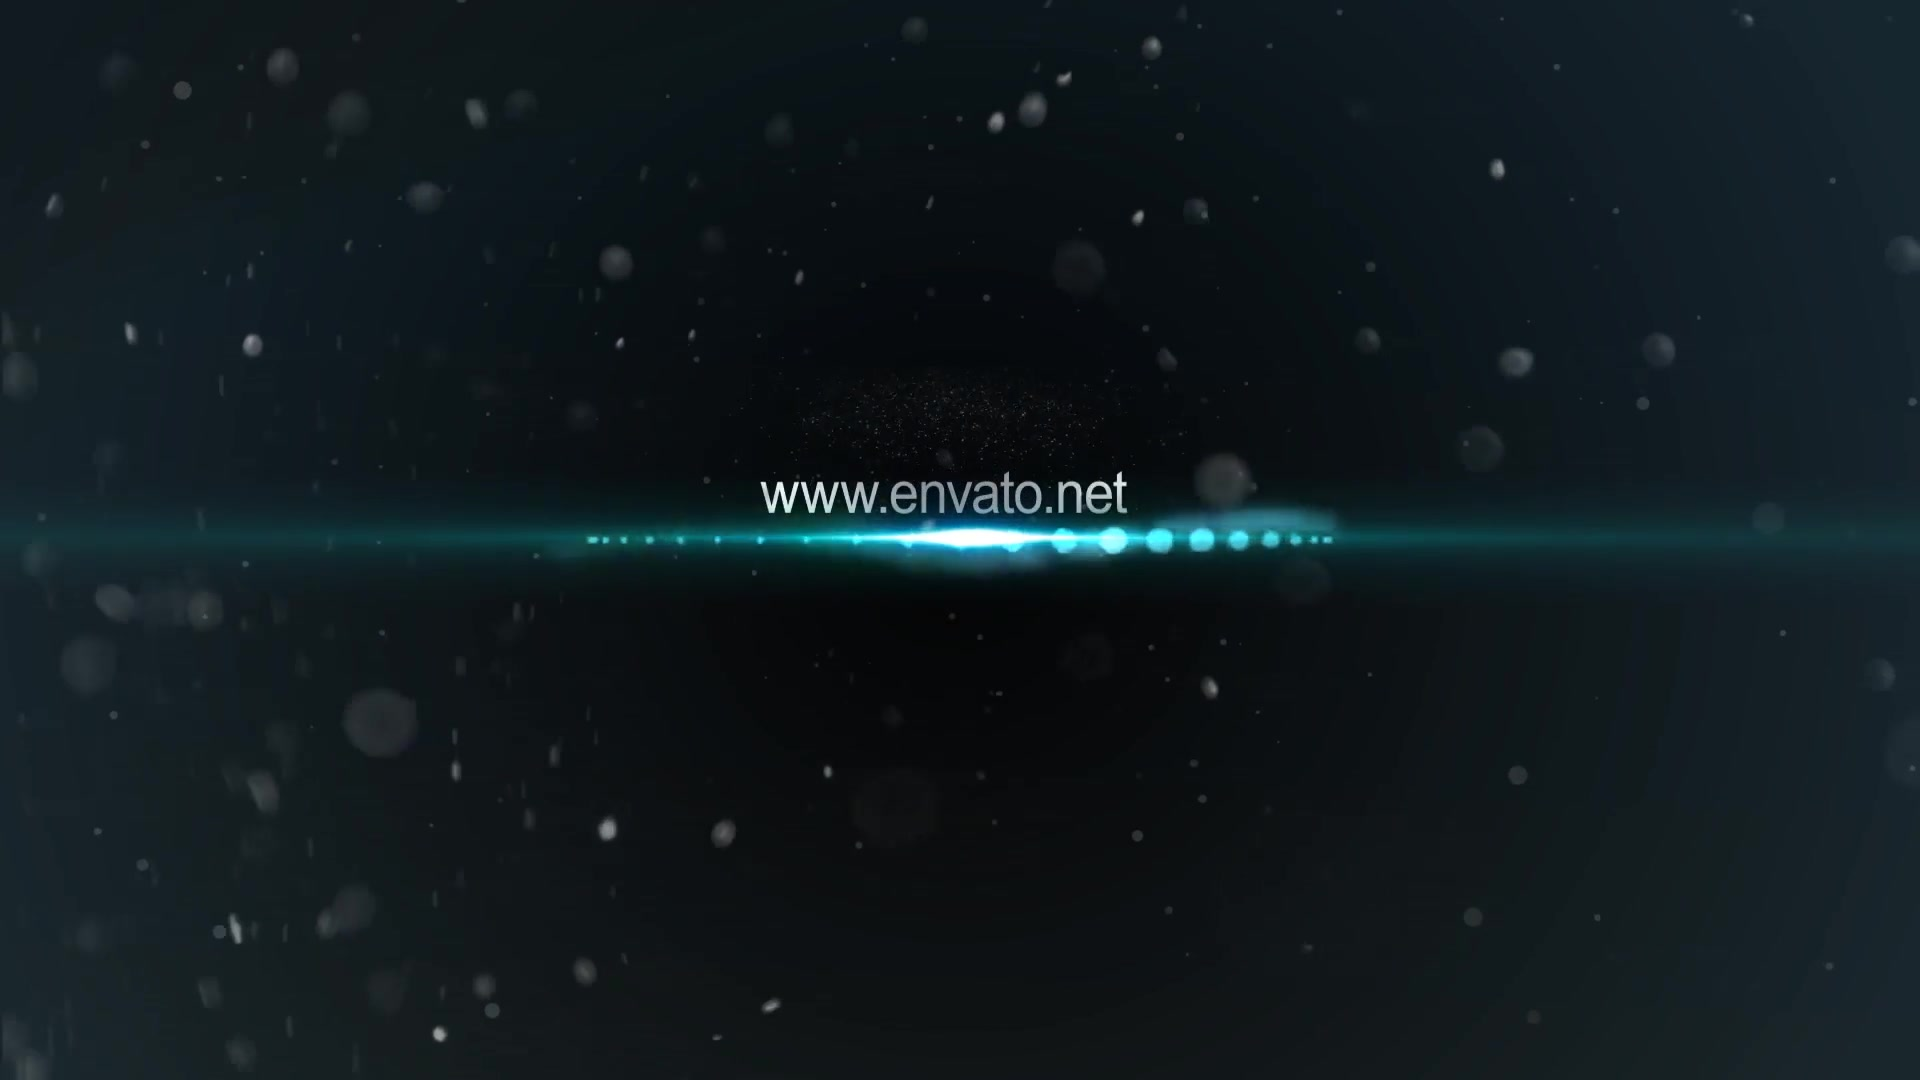 Swarm Particle Logo - Download Videohive 9228235